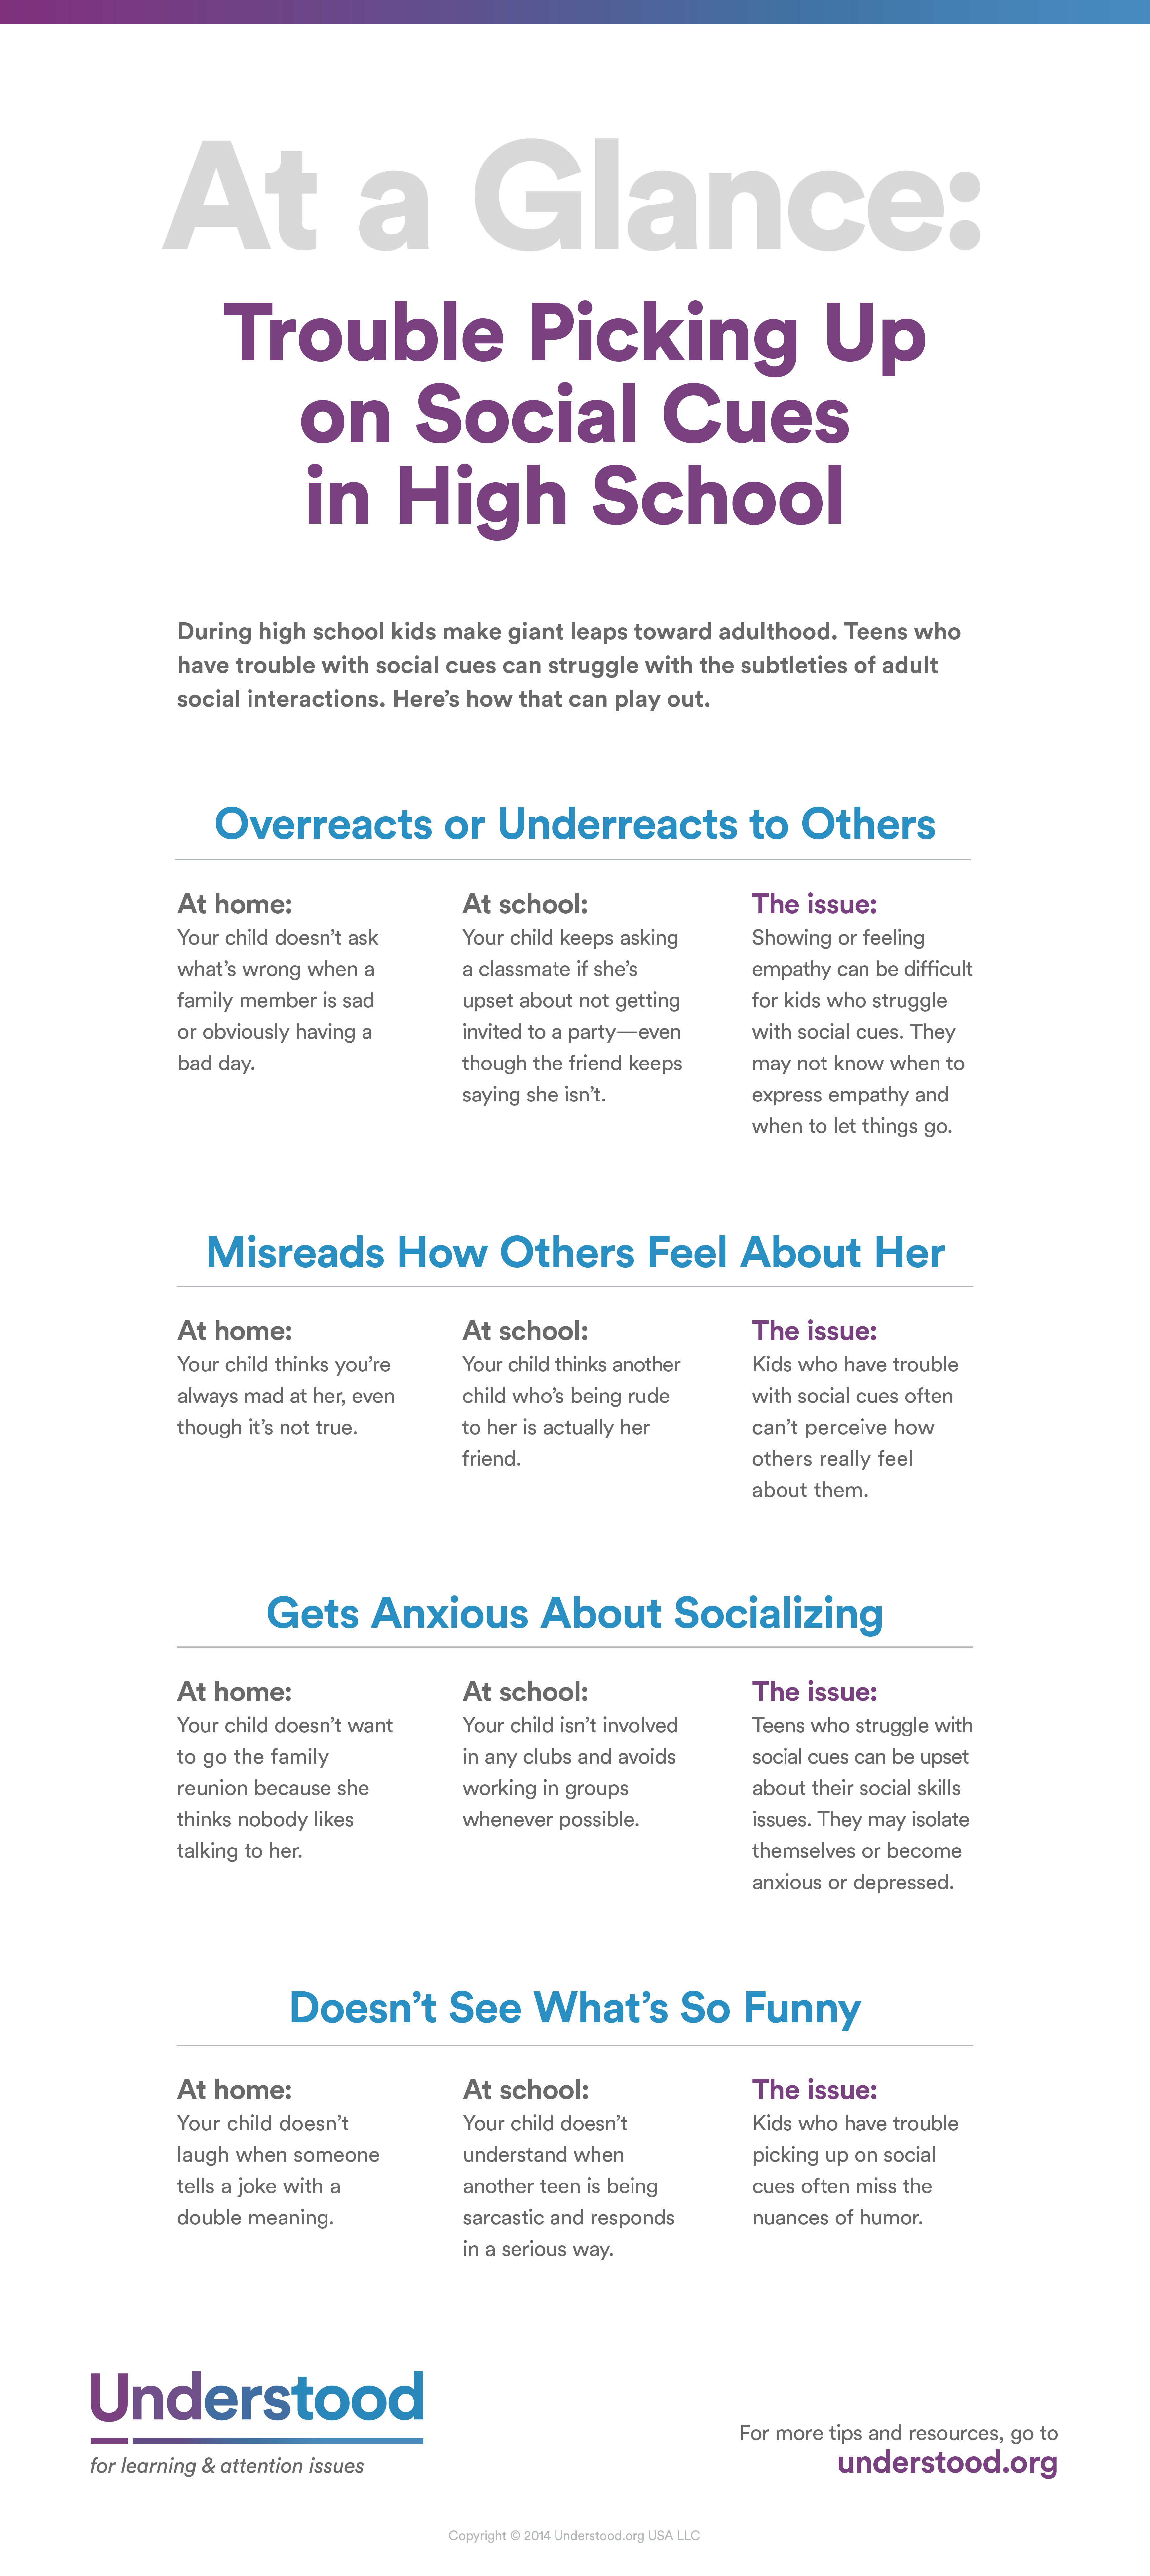 At A Glance Trouble Picking Up On Social Cues In High